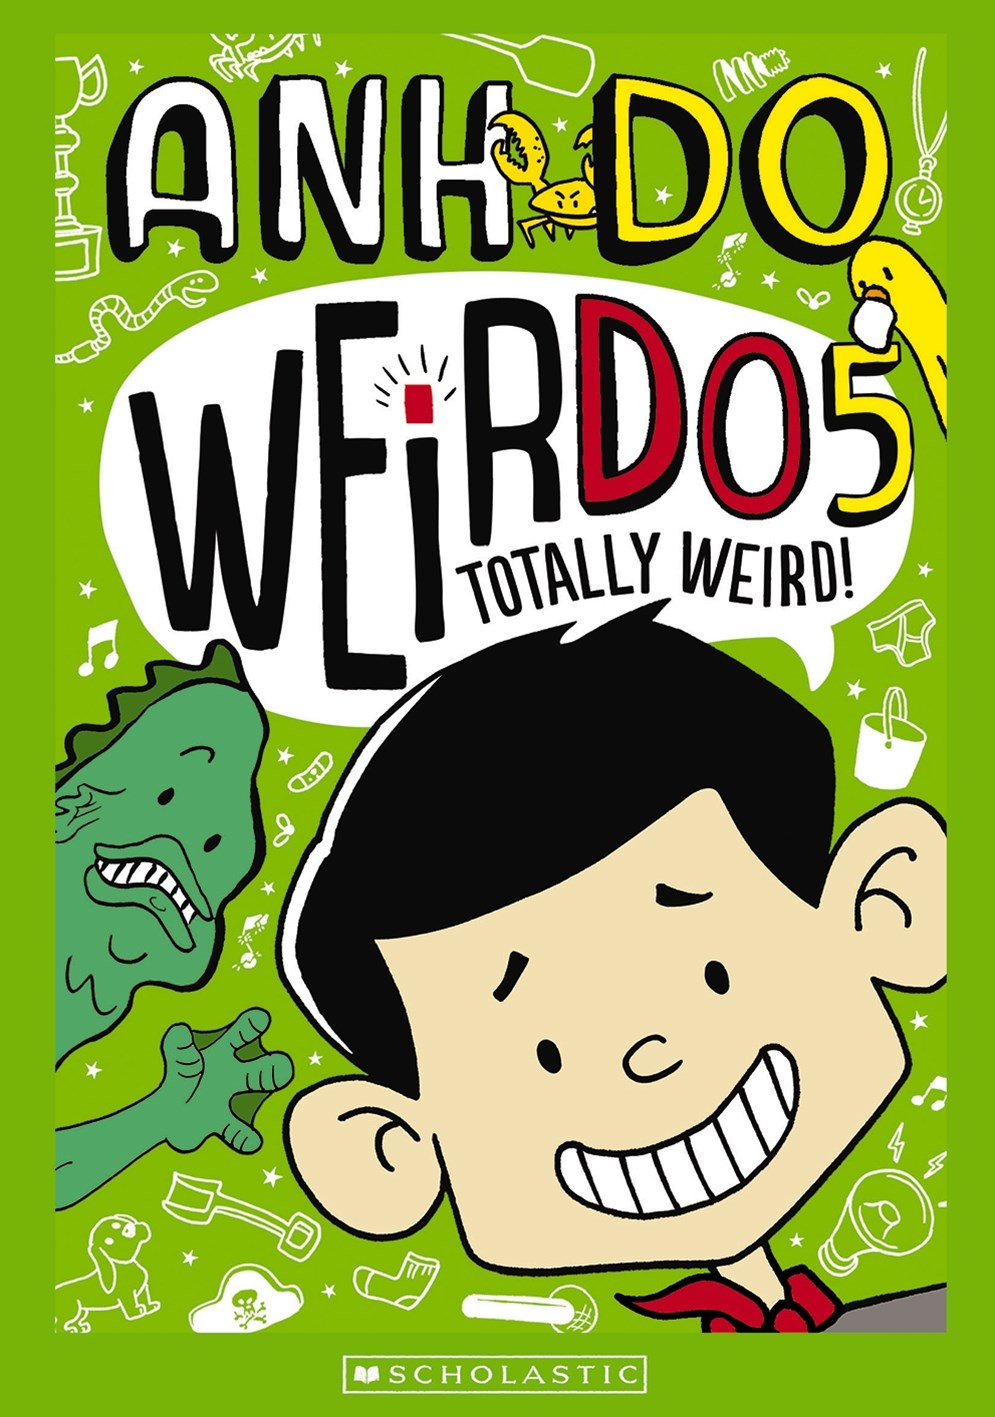 Totally Weird! (Weirdo Book 5)